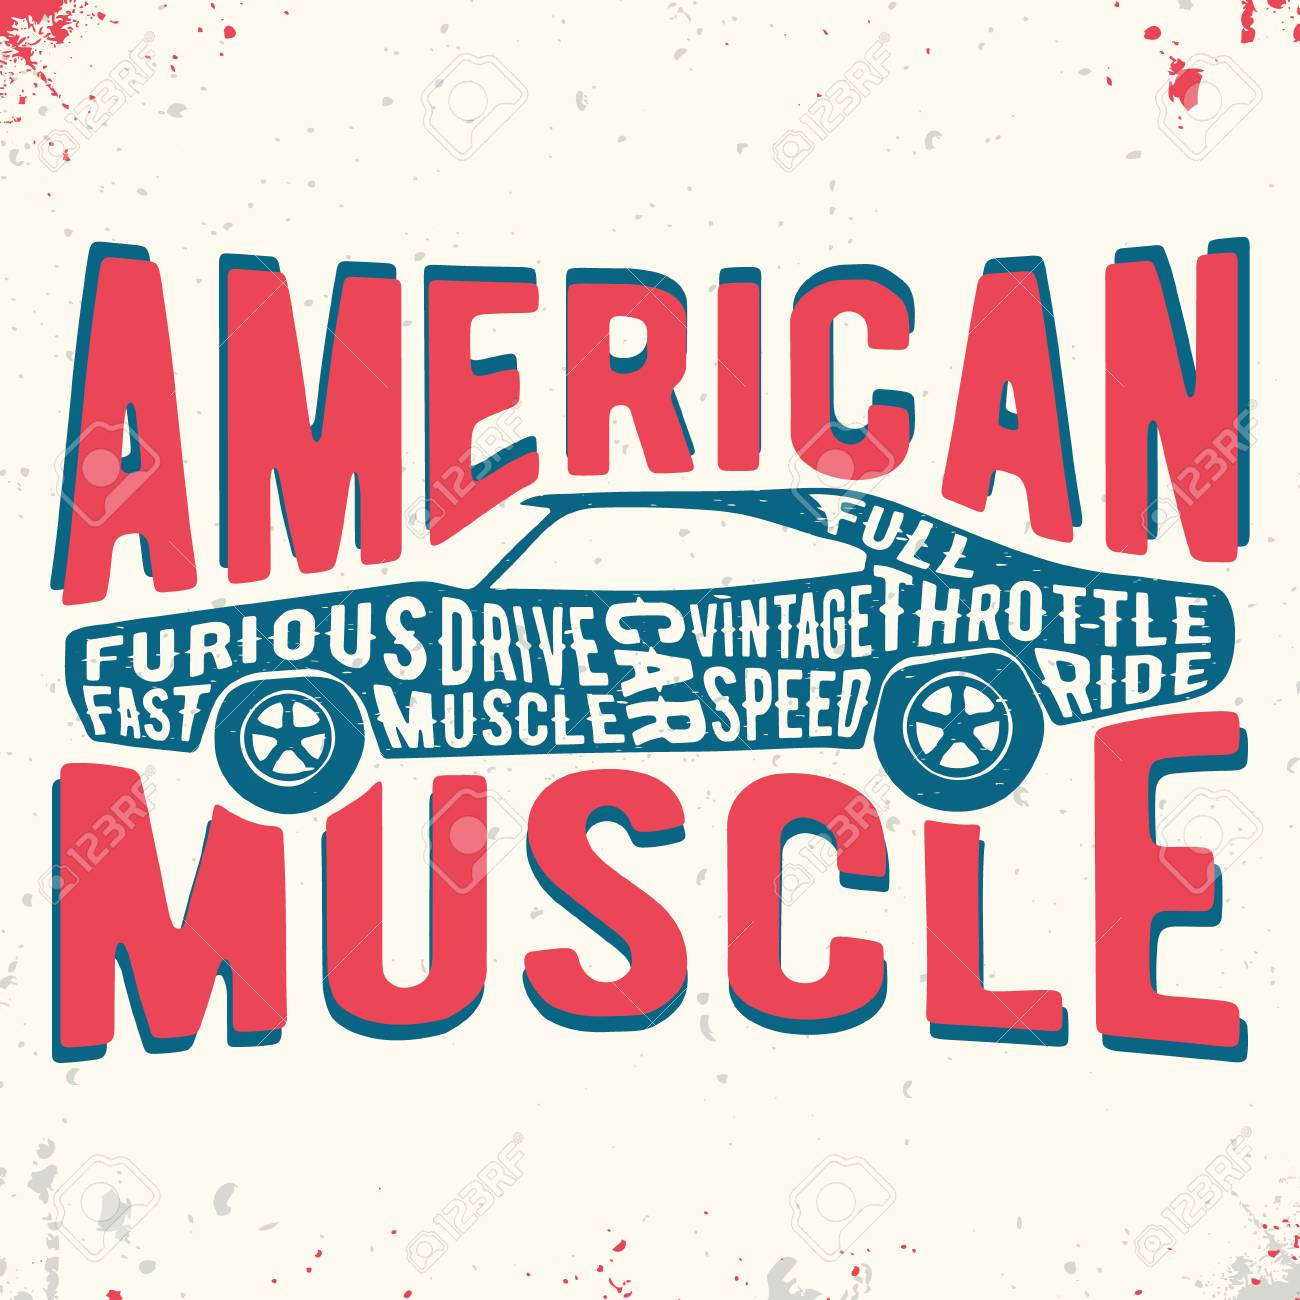 d7ae01af T-shirt print design. Muscle car vintage stamp. Printing and badge applique  label